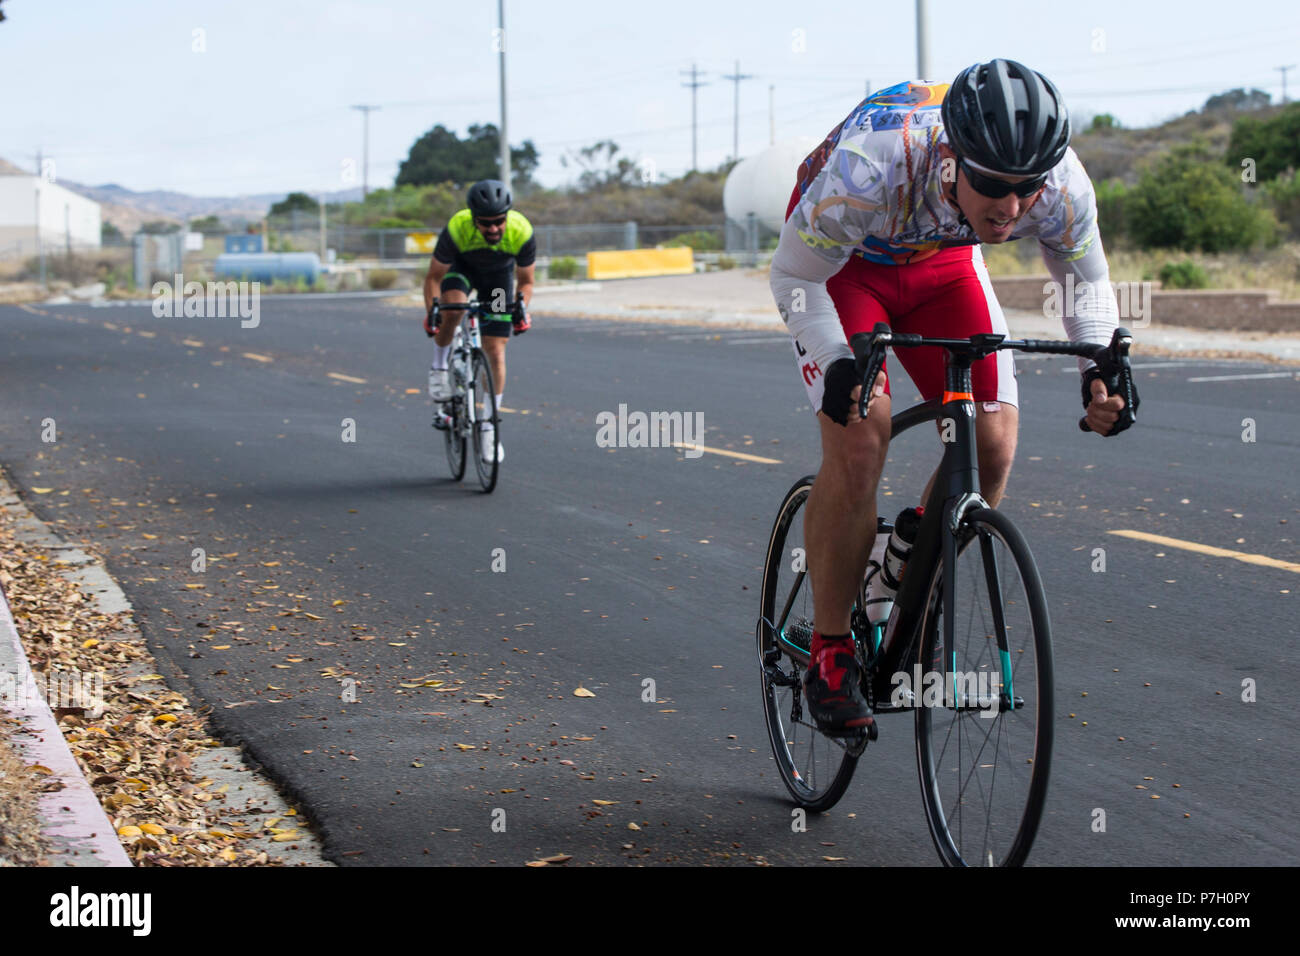 U.S. Marine Corps Staff Sgt. James Dunaway, right, infantry unit leader, Wounded Warrior Battalion-West, and retired Master Sgt. Mark Mann, left, volunteer, perform timed trials at Marine Corps Base Camp Pendleton, California, June 26, 2018. Dunaway and his coaches haved trained several months cycling over 30 miles a day, five days a week. (U.S. Marine Corps photo by Lance Cpl. Drake Nickels) - Stock Image